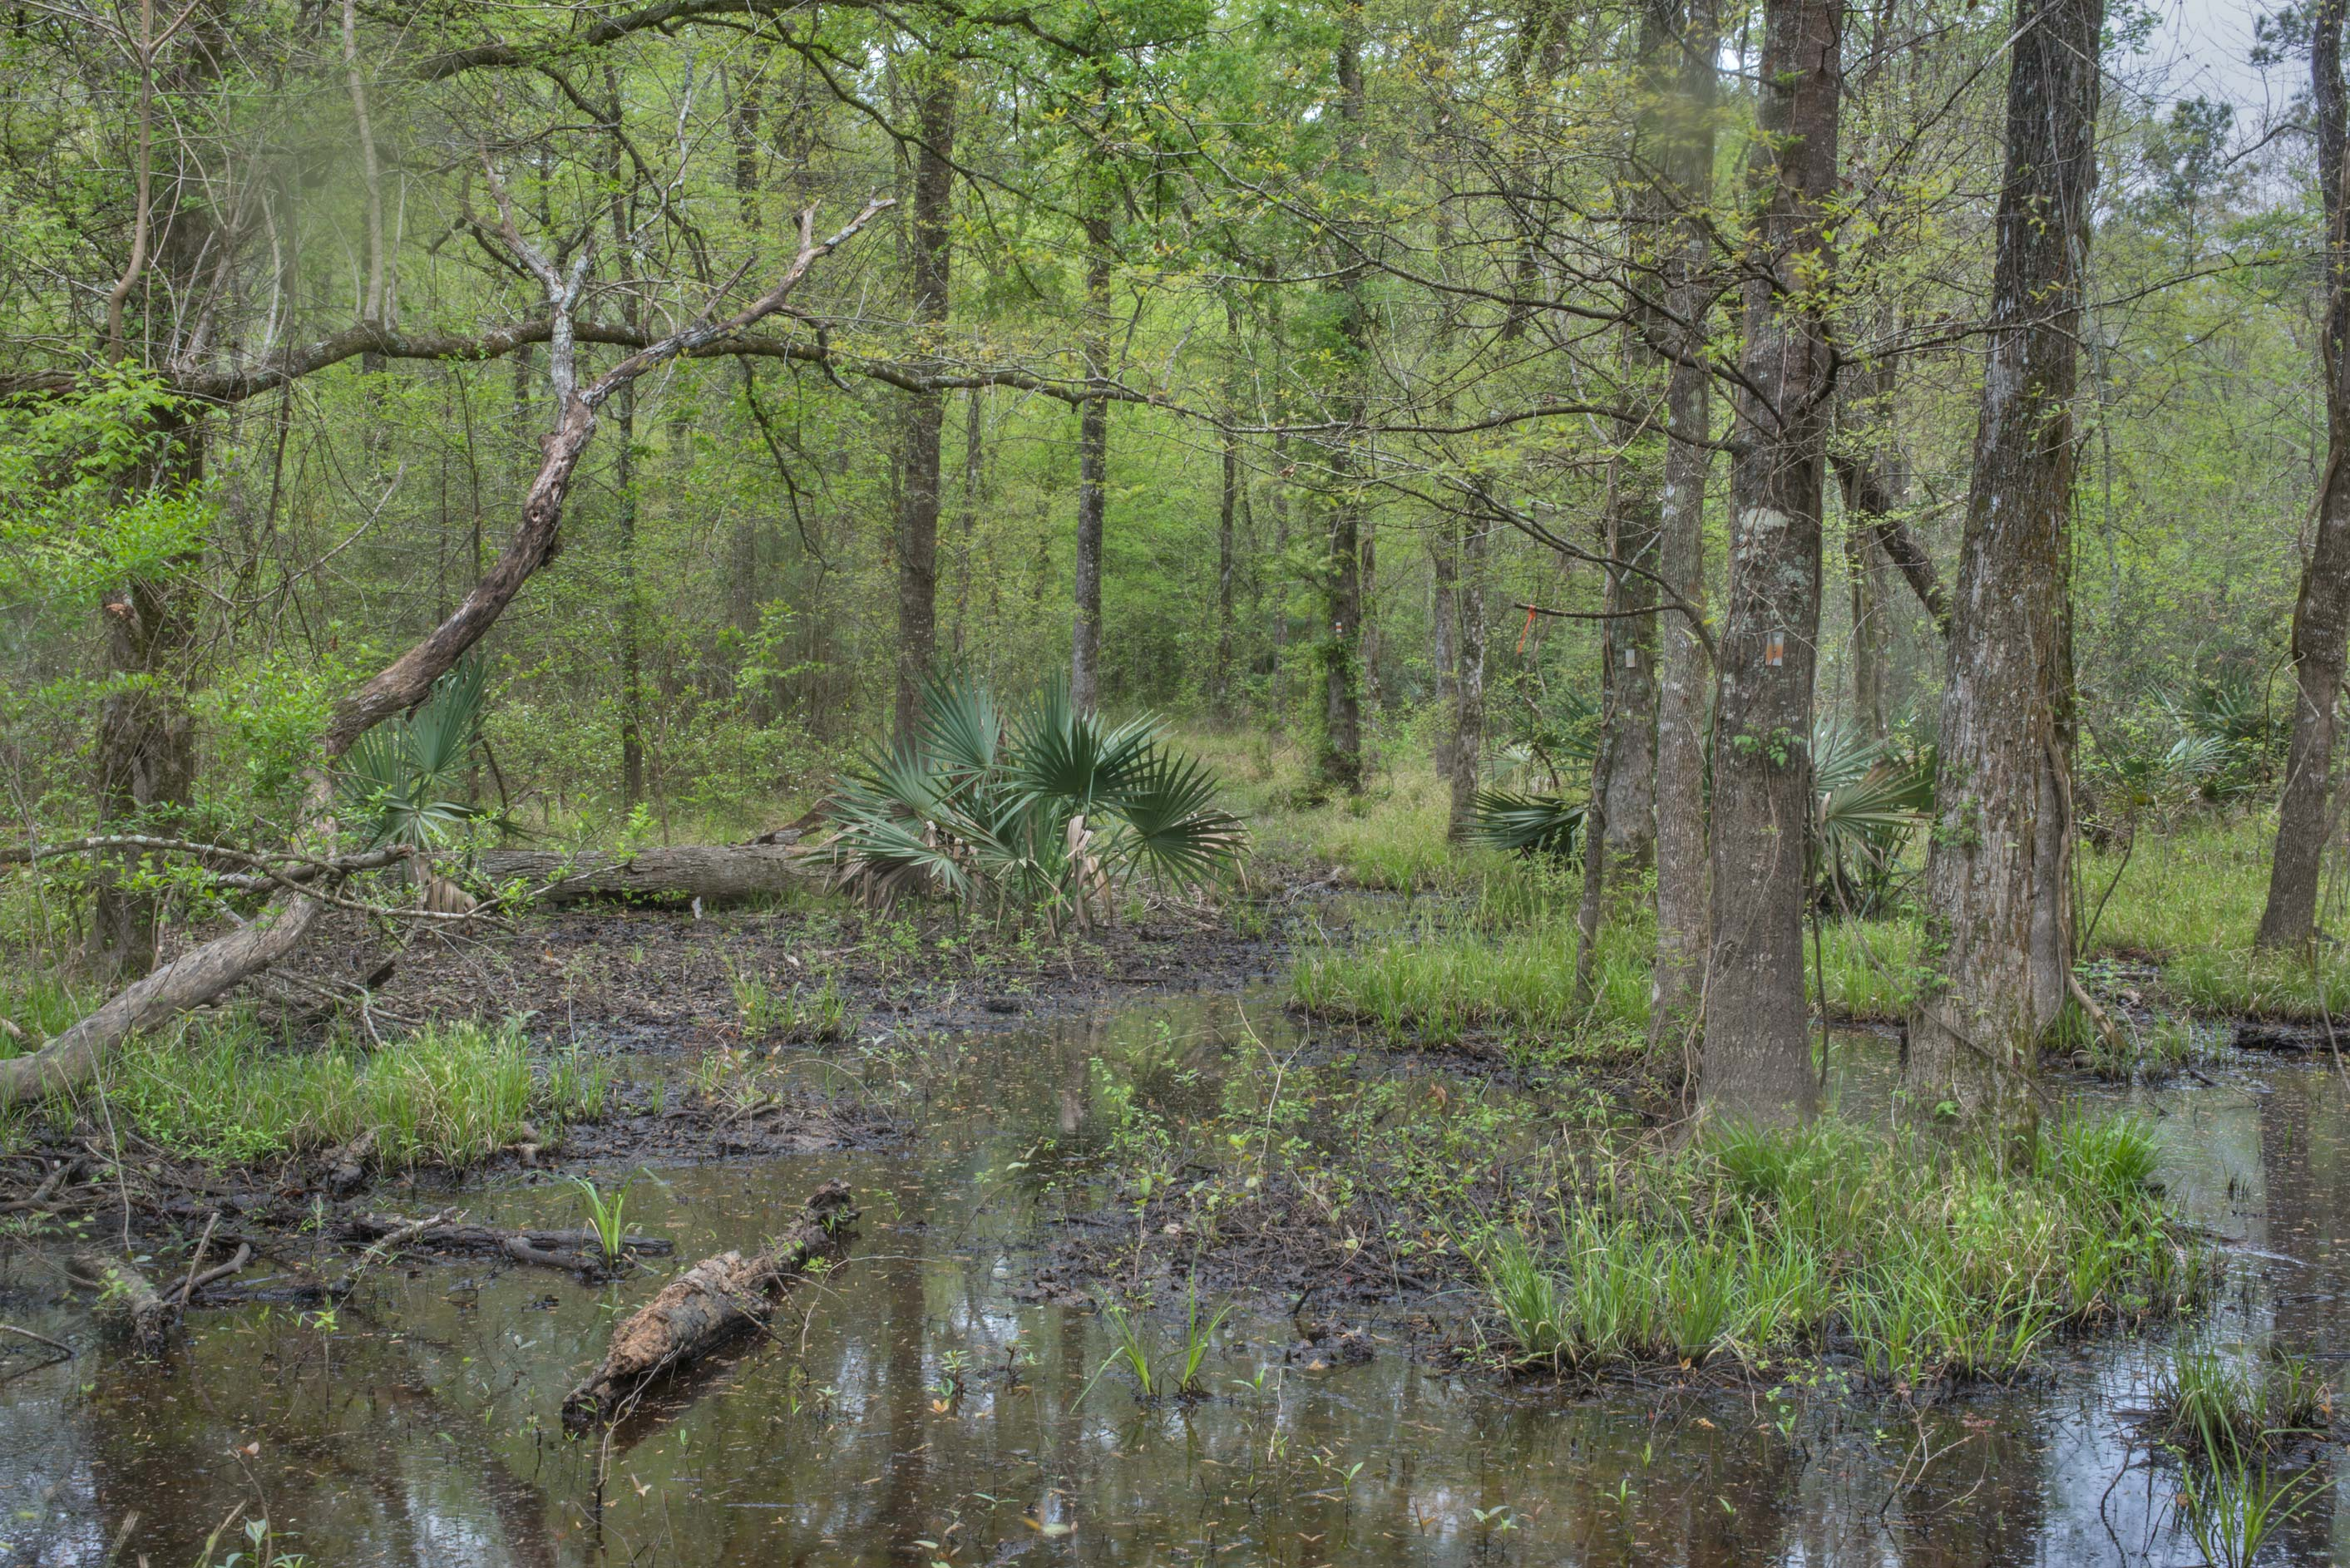 Swampy area on Caney Creek section of Lone Star...National Forest near Huntsville, Texas